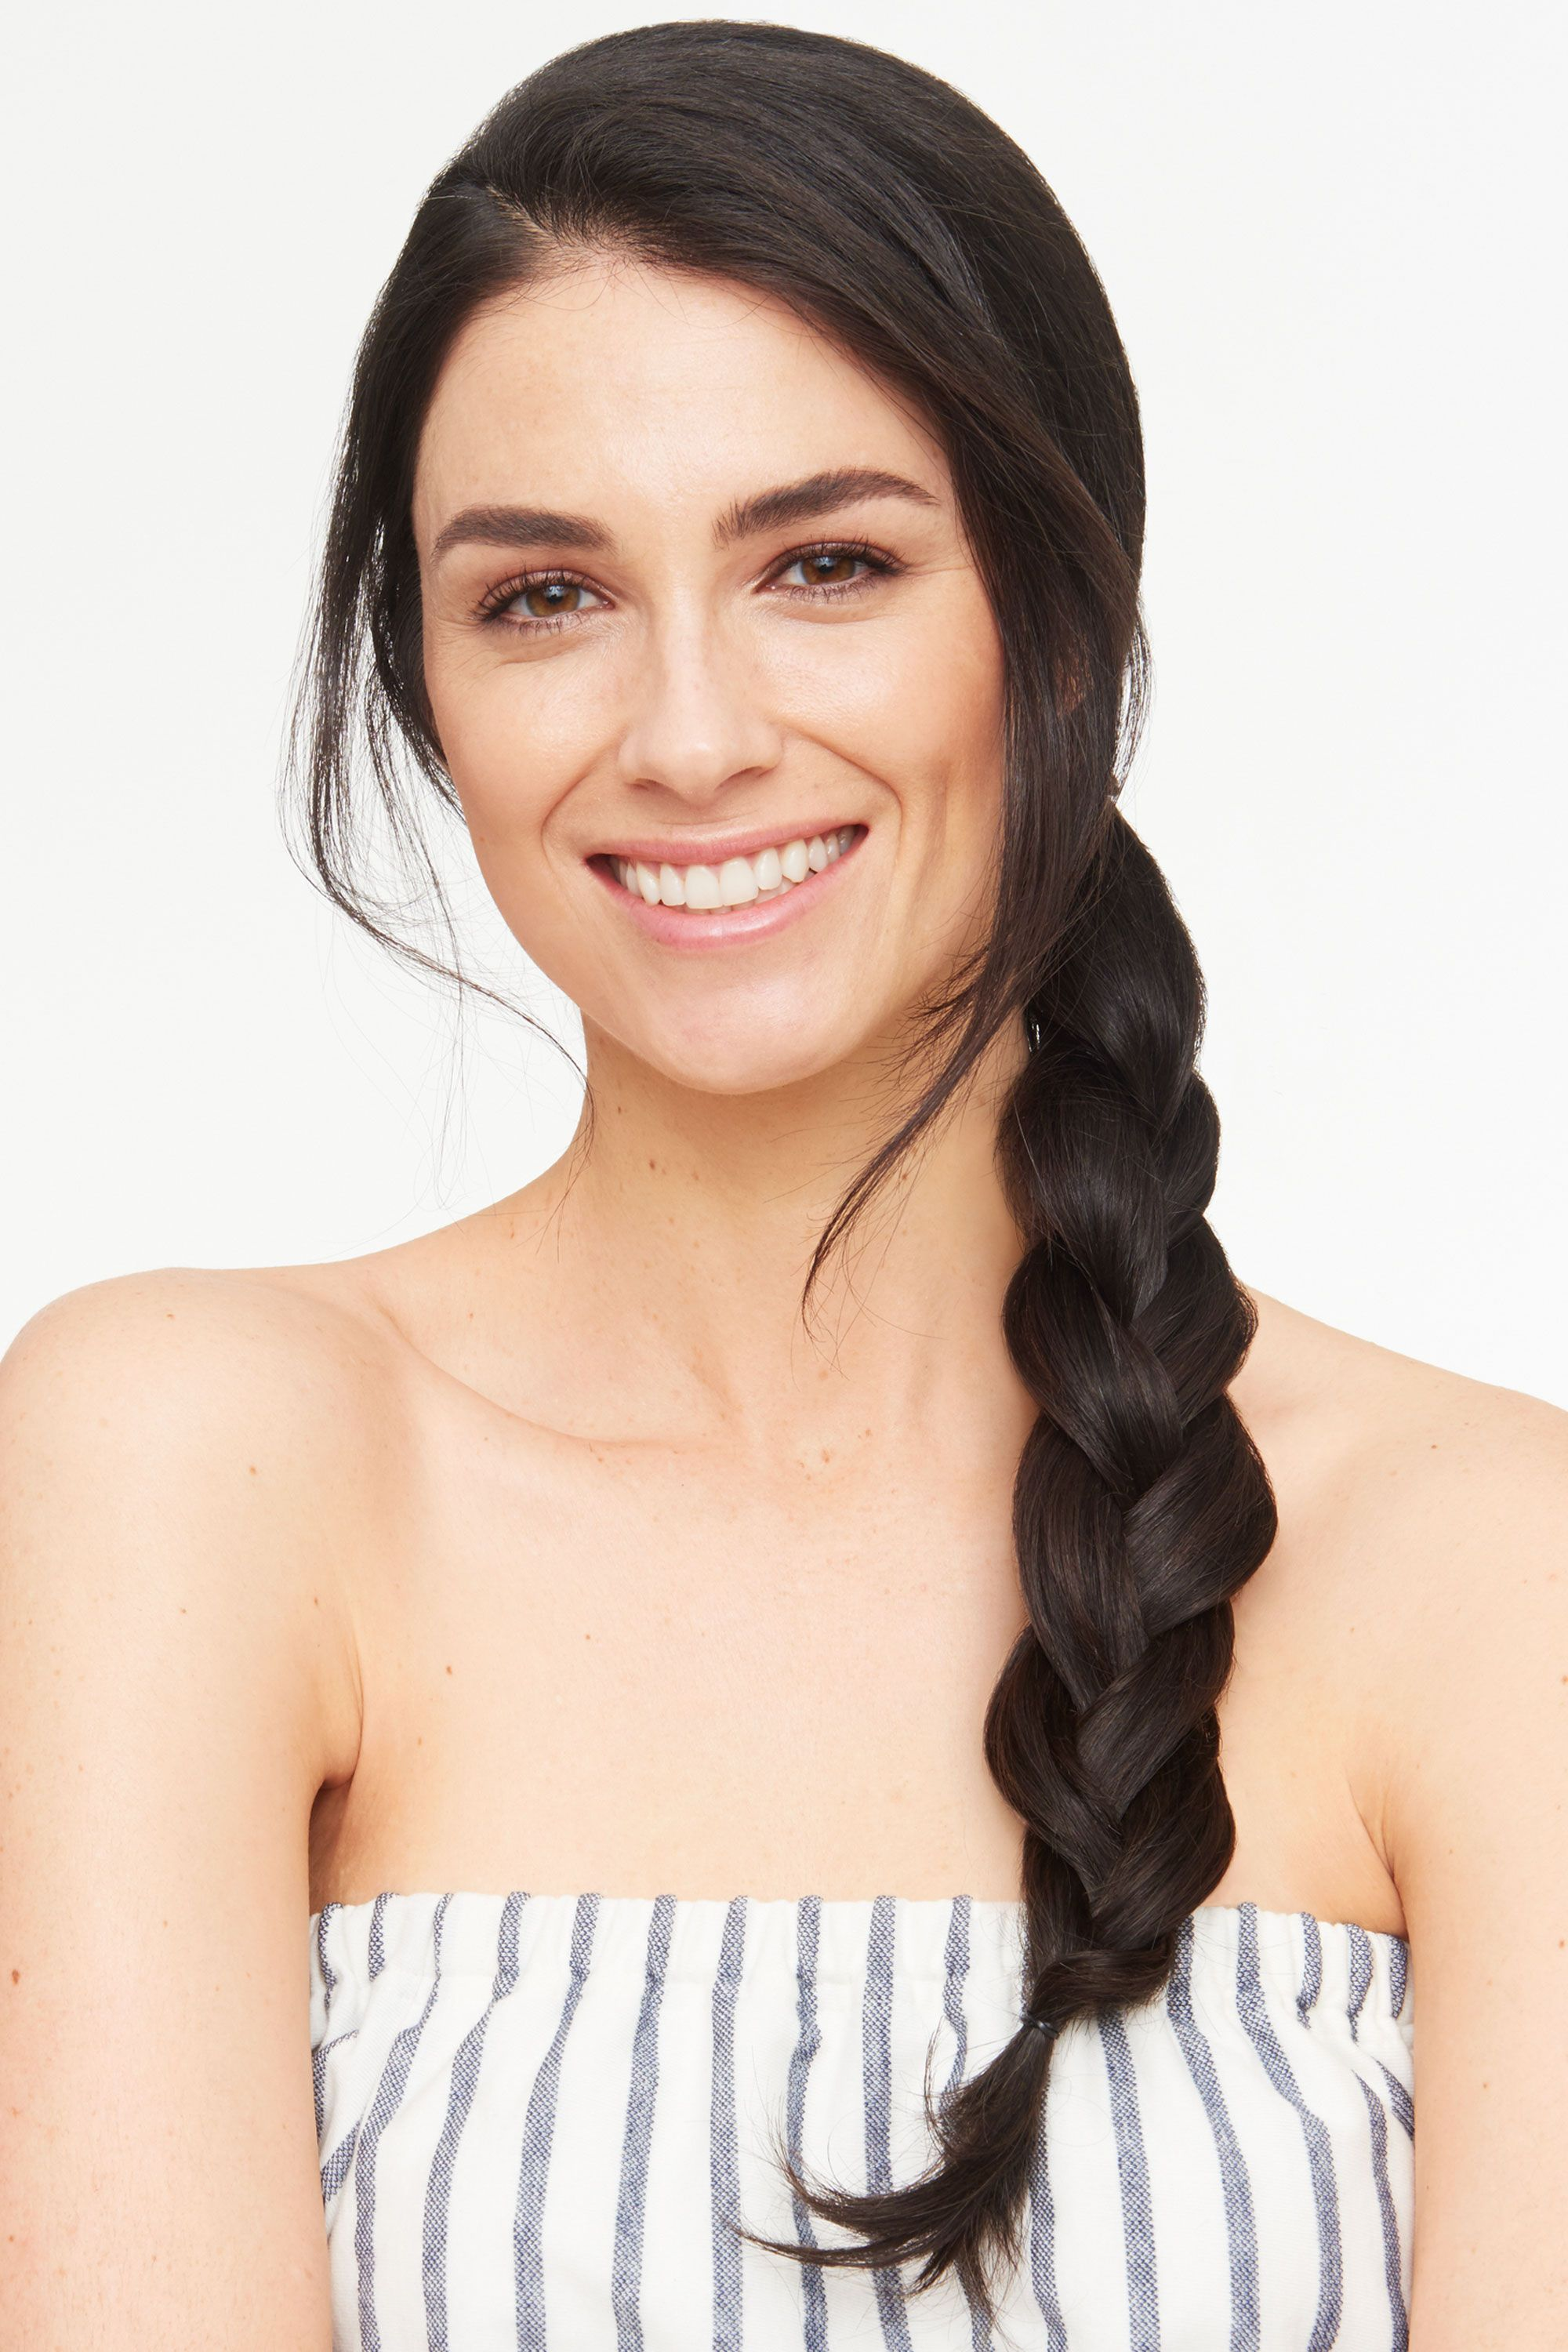 """<p>A trendy braided ponytail is a breeze to D.I.Y. Prep your hair with a texturizer like <a href=""""http://www.shophairstory.com/www/product/869693000137"""" target=""""_blank"""">Hairstory Undressed</a>, which adds grip and works great on wet or damp strands. Make a side ponytail, braid it down to the ends and secure with an elastic. Post-braiding, gently tug out the hair for a more modern effect. </p>"""